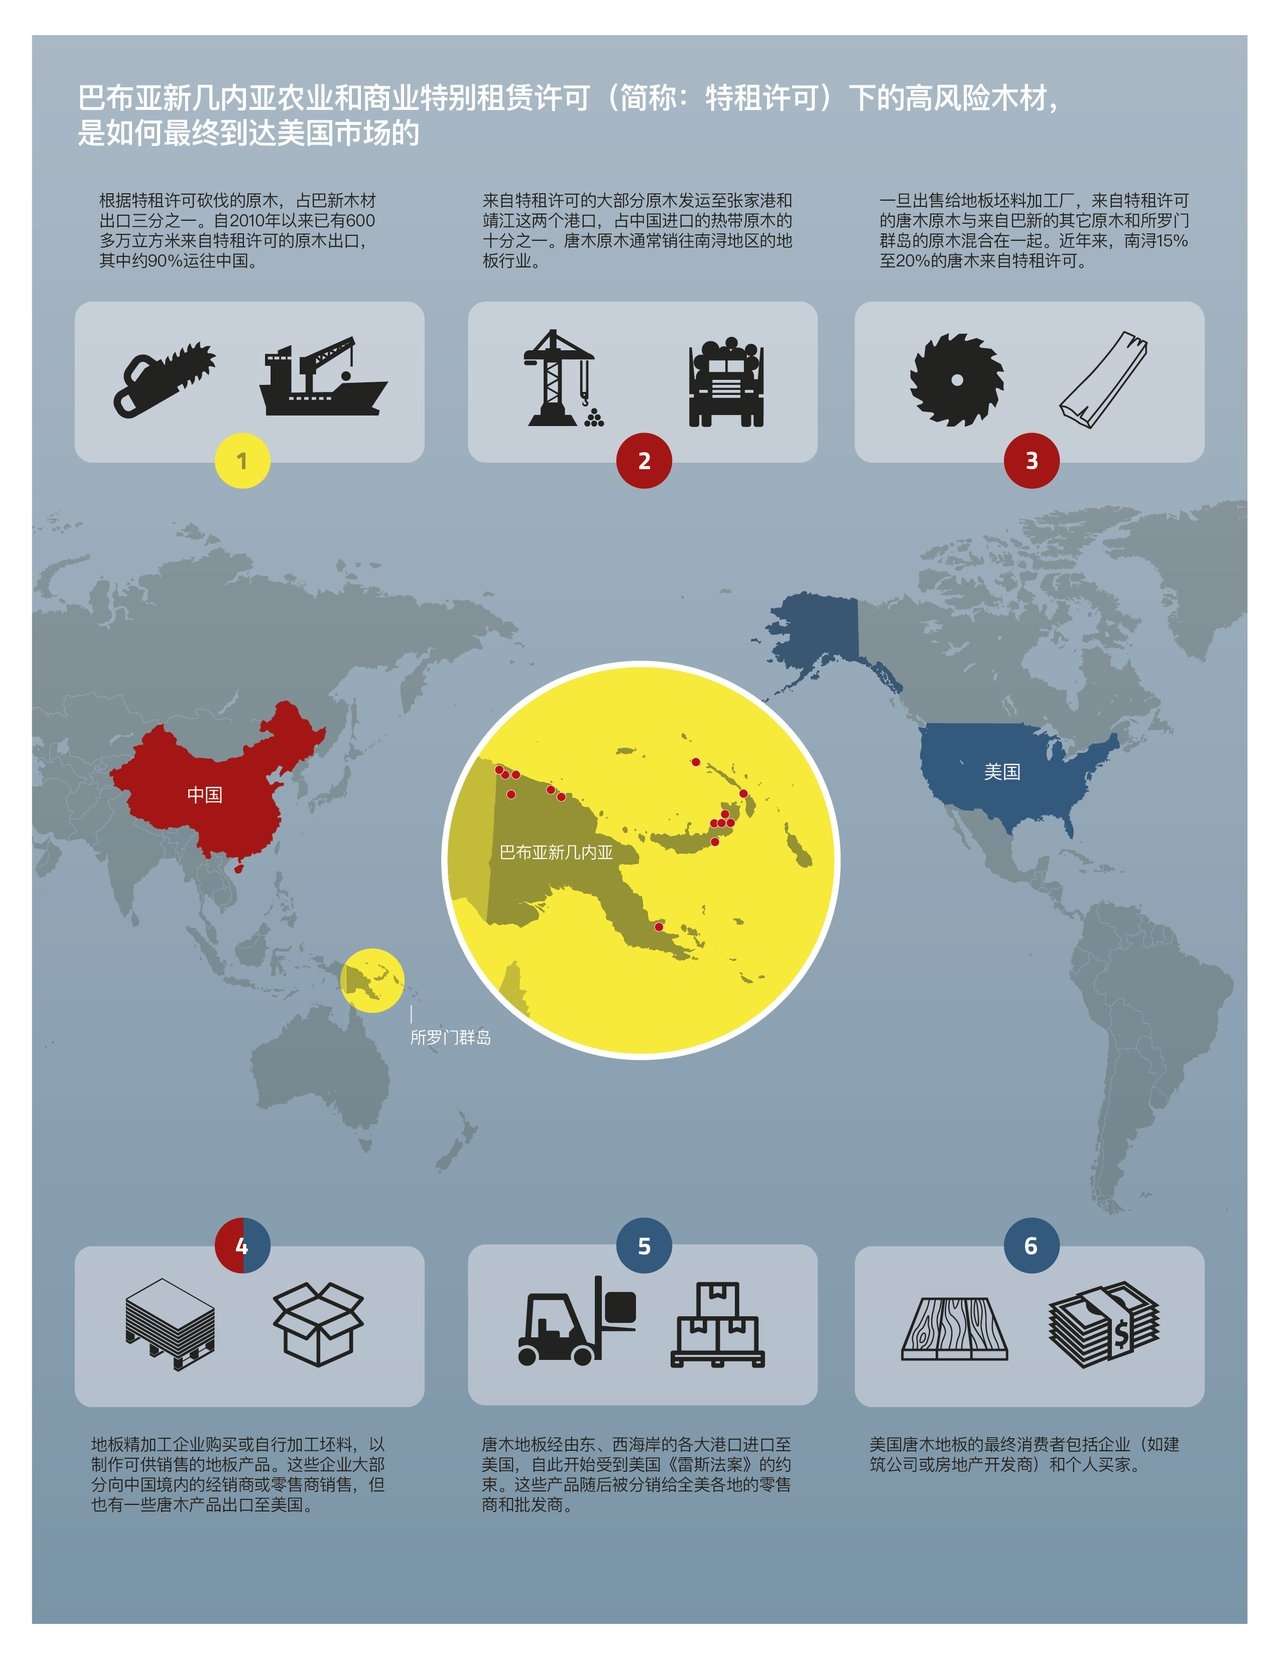 Stained trade supply chain infographic Chinese